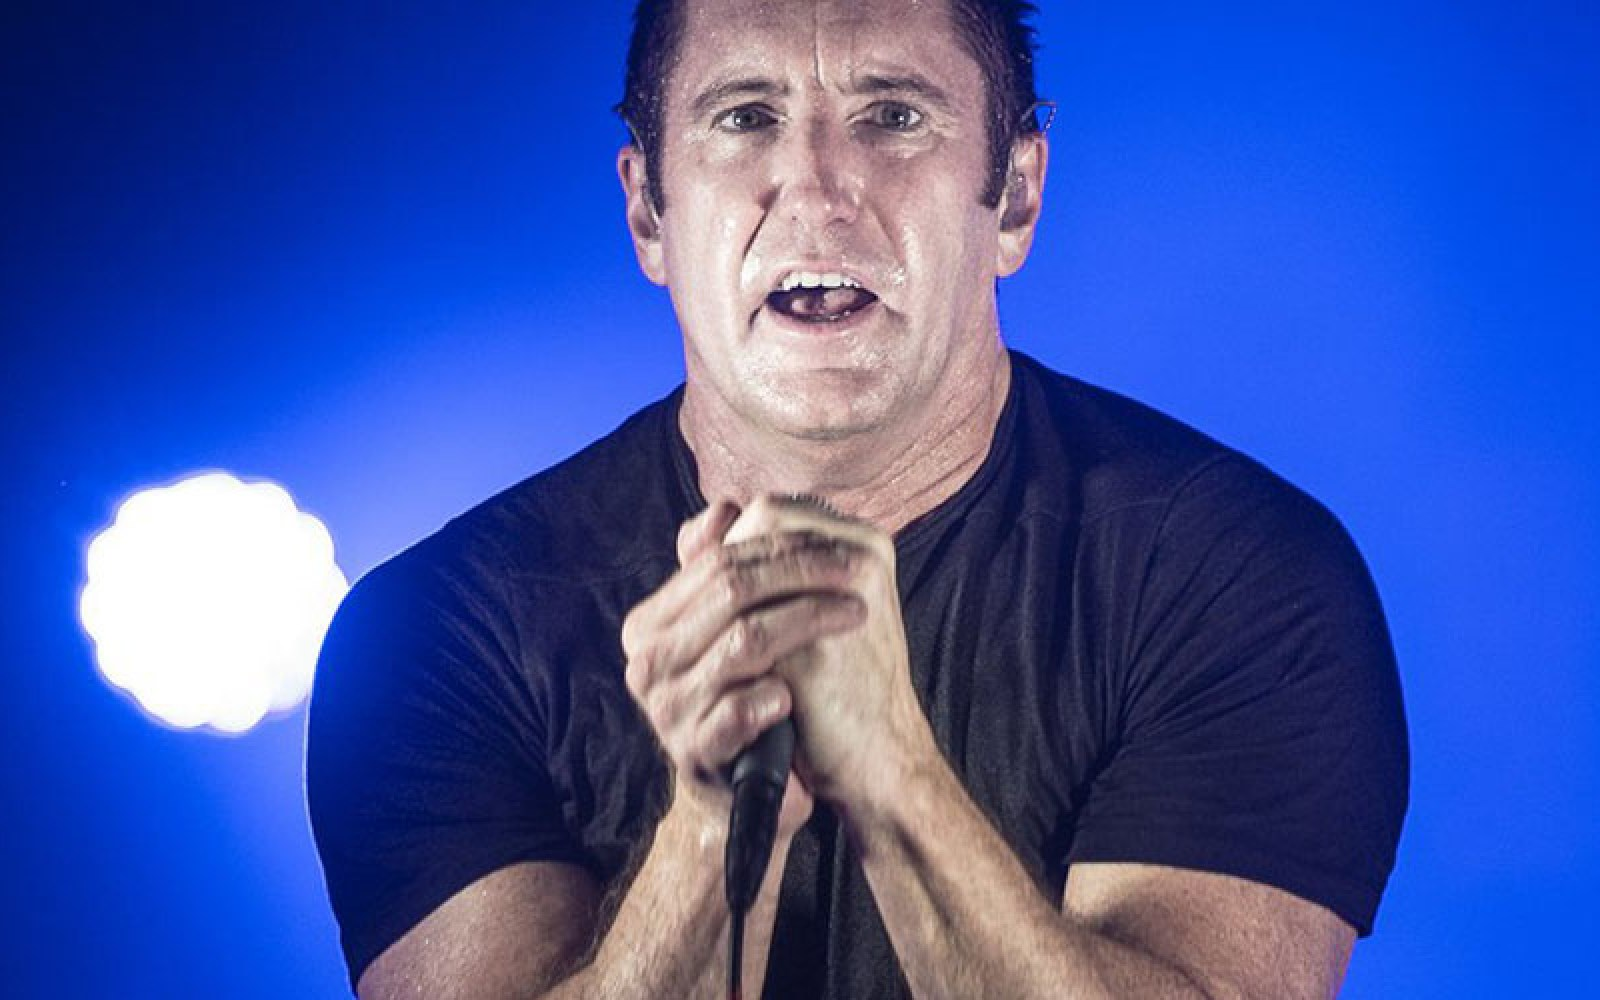 Trent Reznor says YouTube 'built on stolen content' as Apple Music execs discuss lessons learned